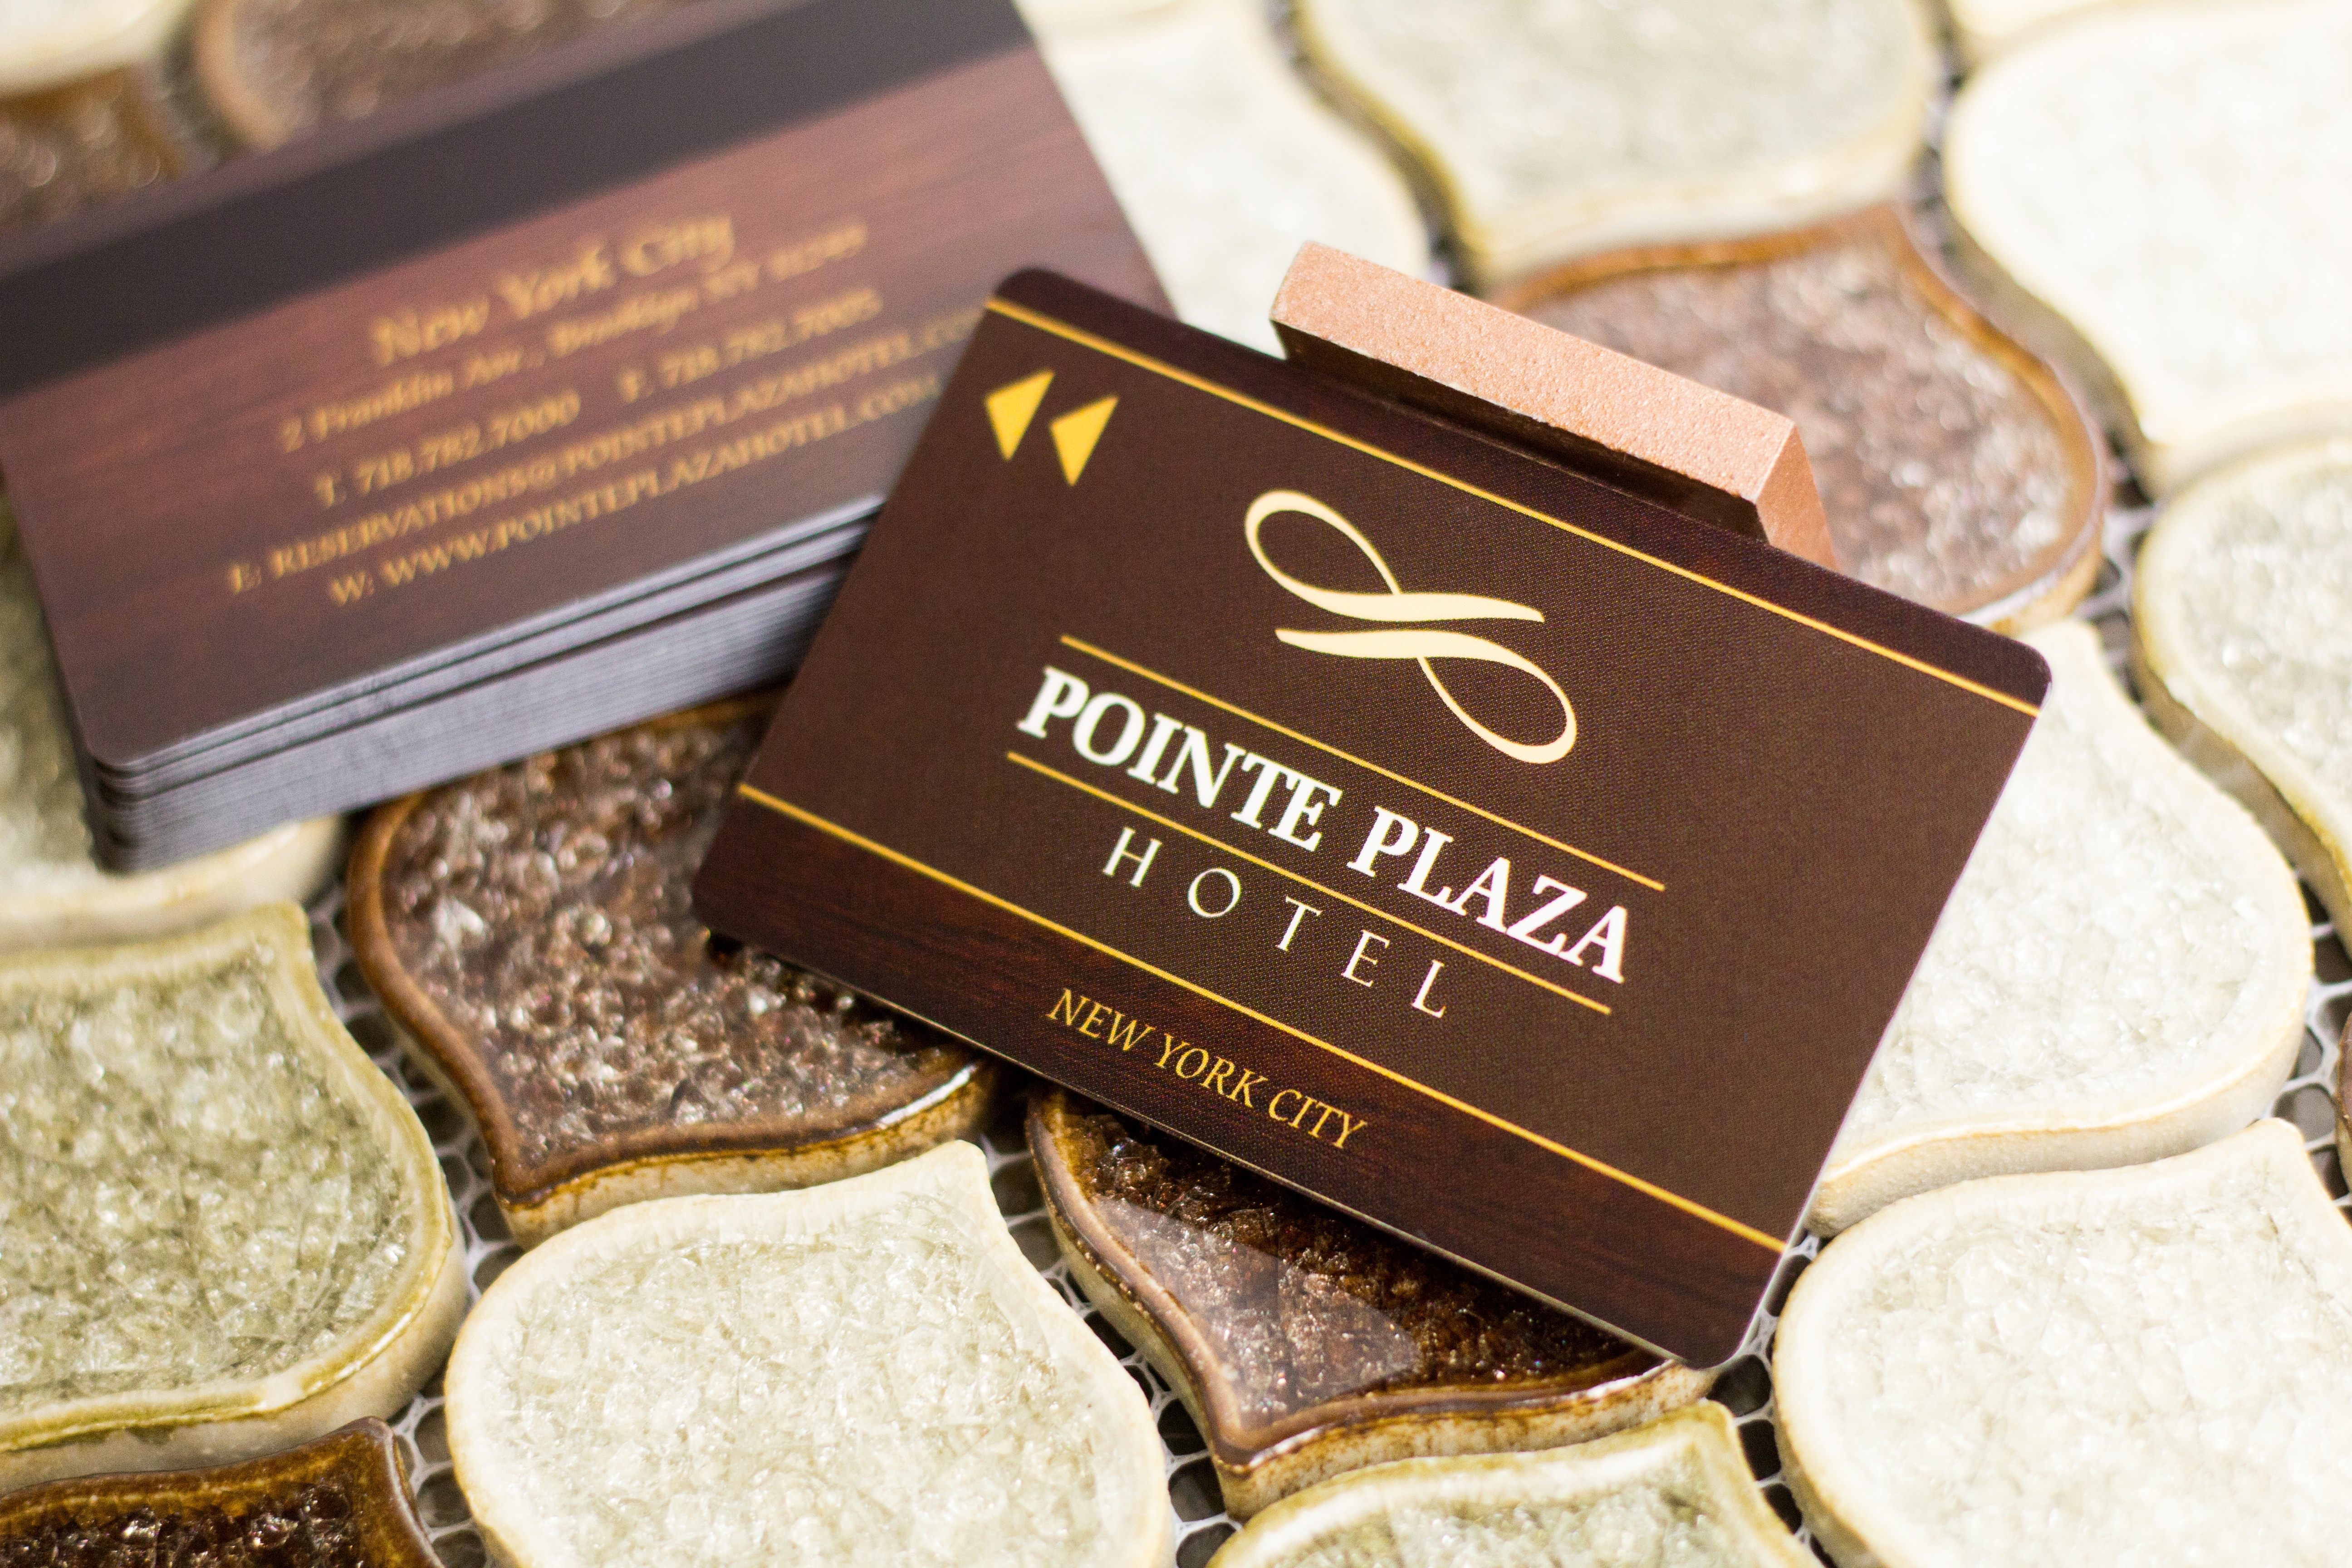 Pointe Plaza Hotel Key Card with a Magnetic Stripe